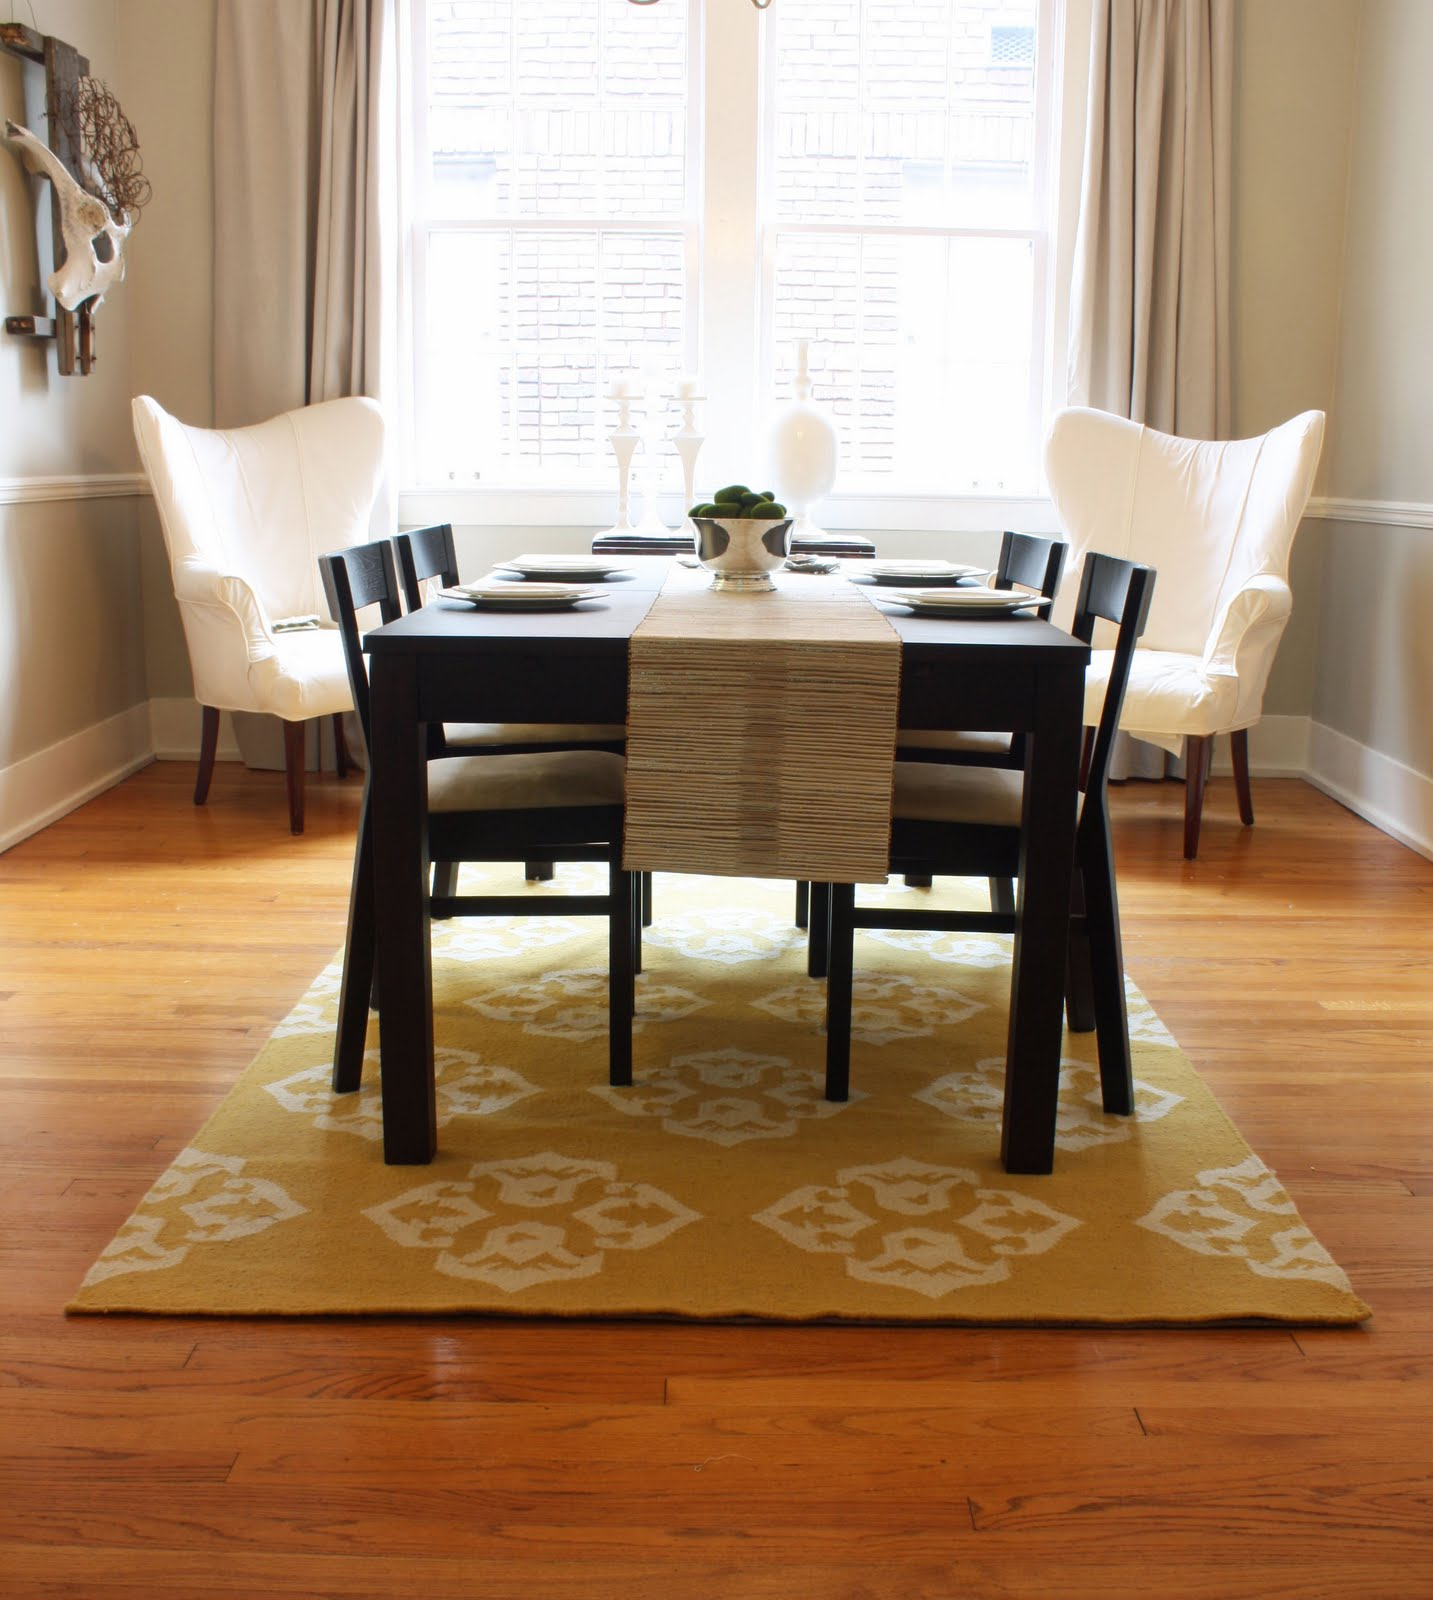 dwell and tell Dining Room Updates  Curtains  Rug